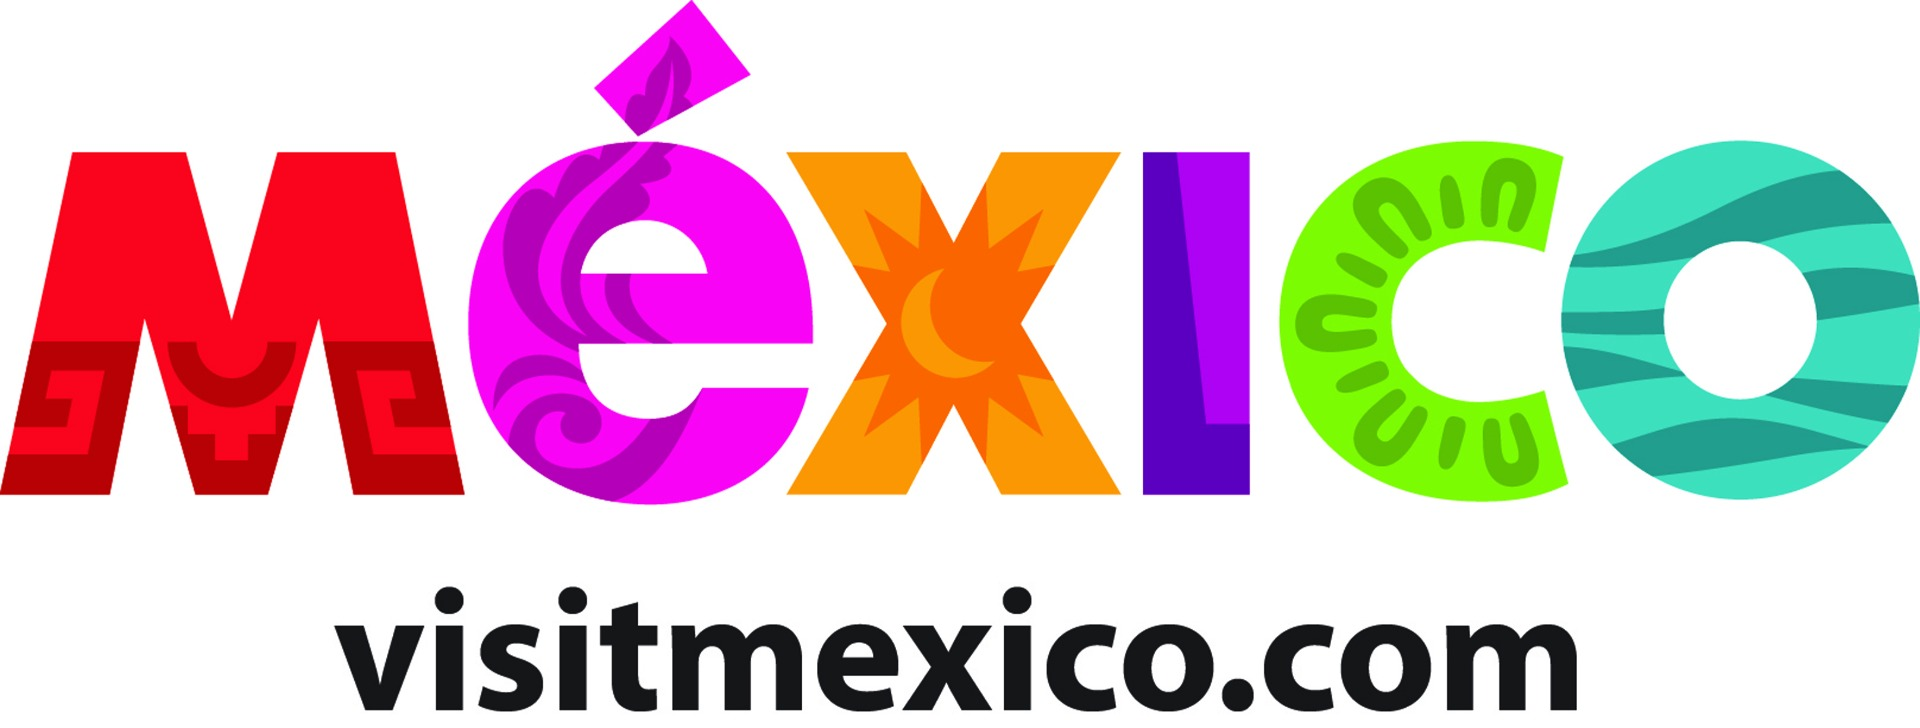 Beyond sport for Mexican logos pictures